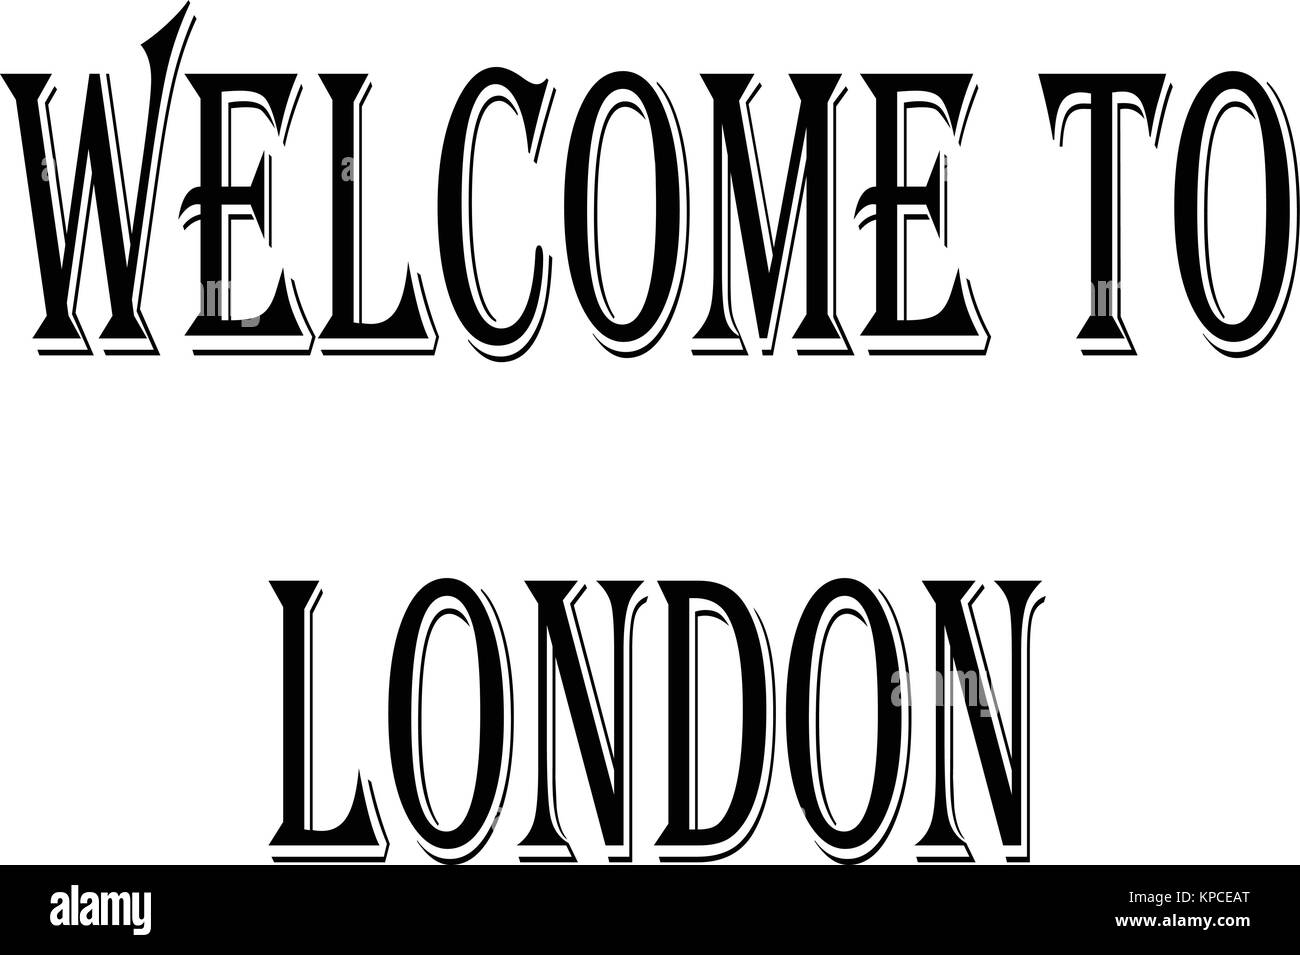 Welcome to london text sign illuastration on white background - Stock Image